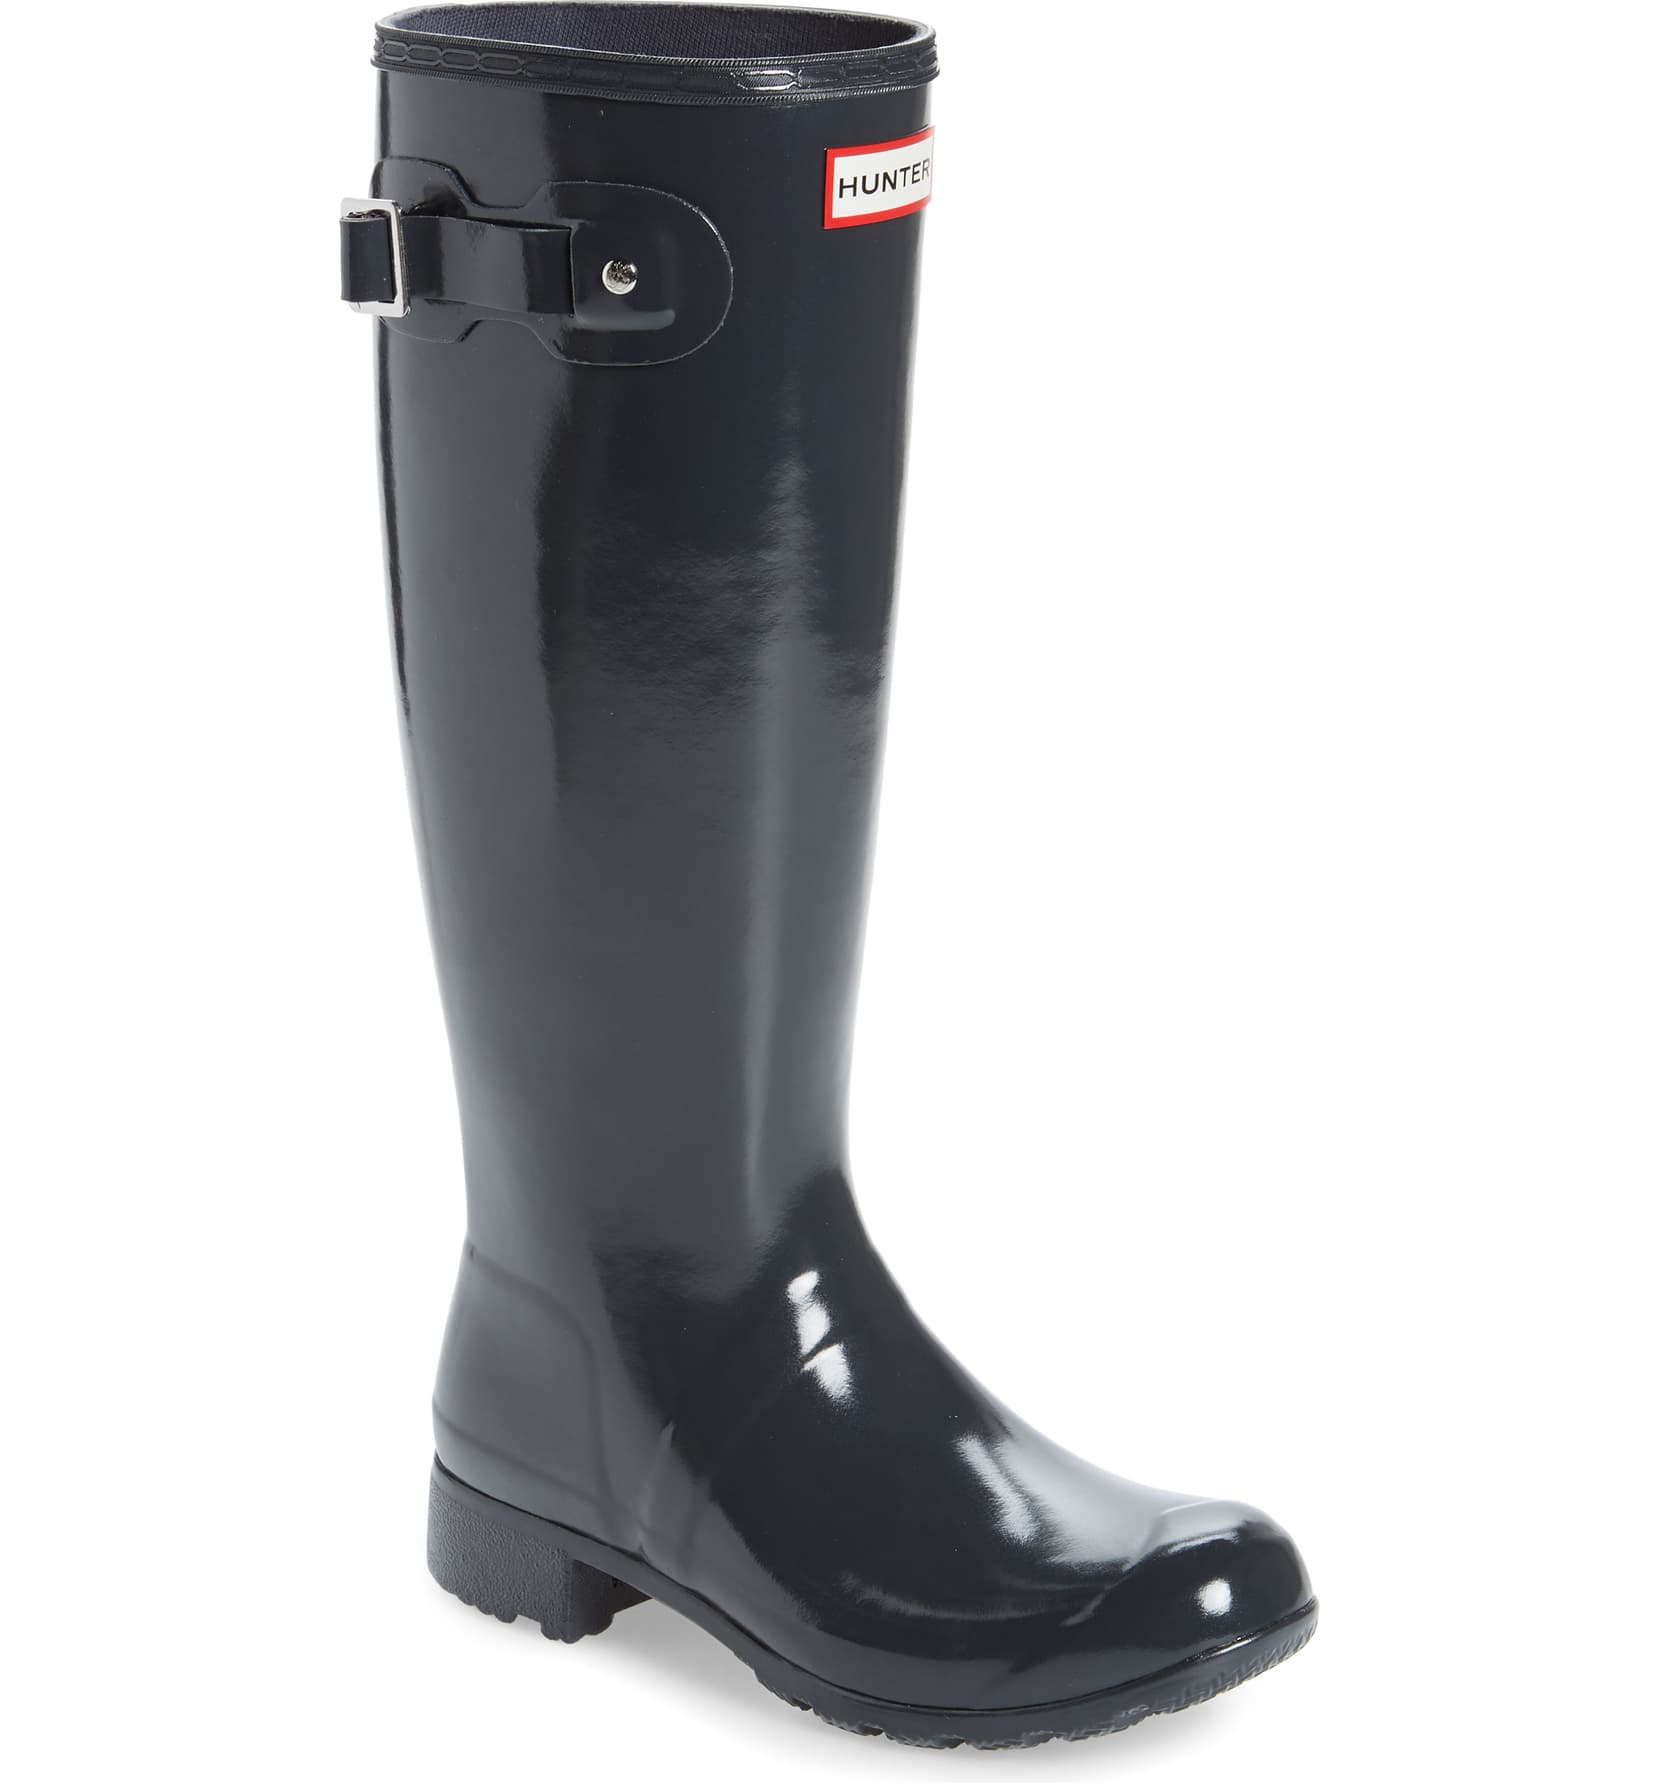 Hunter Rain Boot Sale at Nordstrom's Black Friday Event